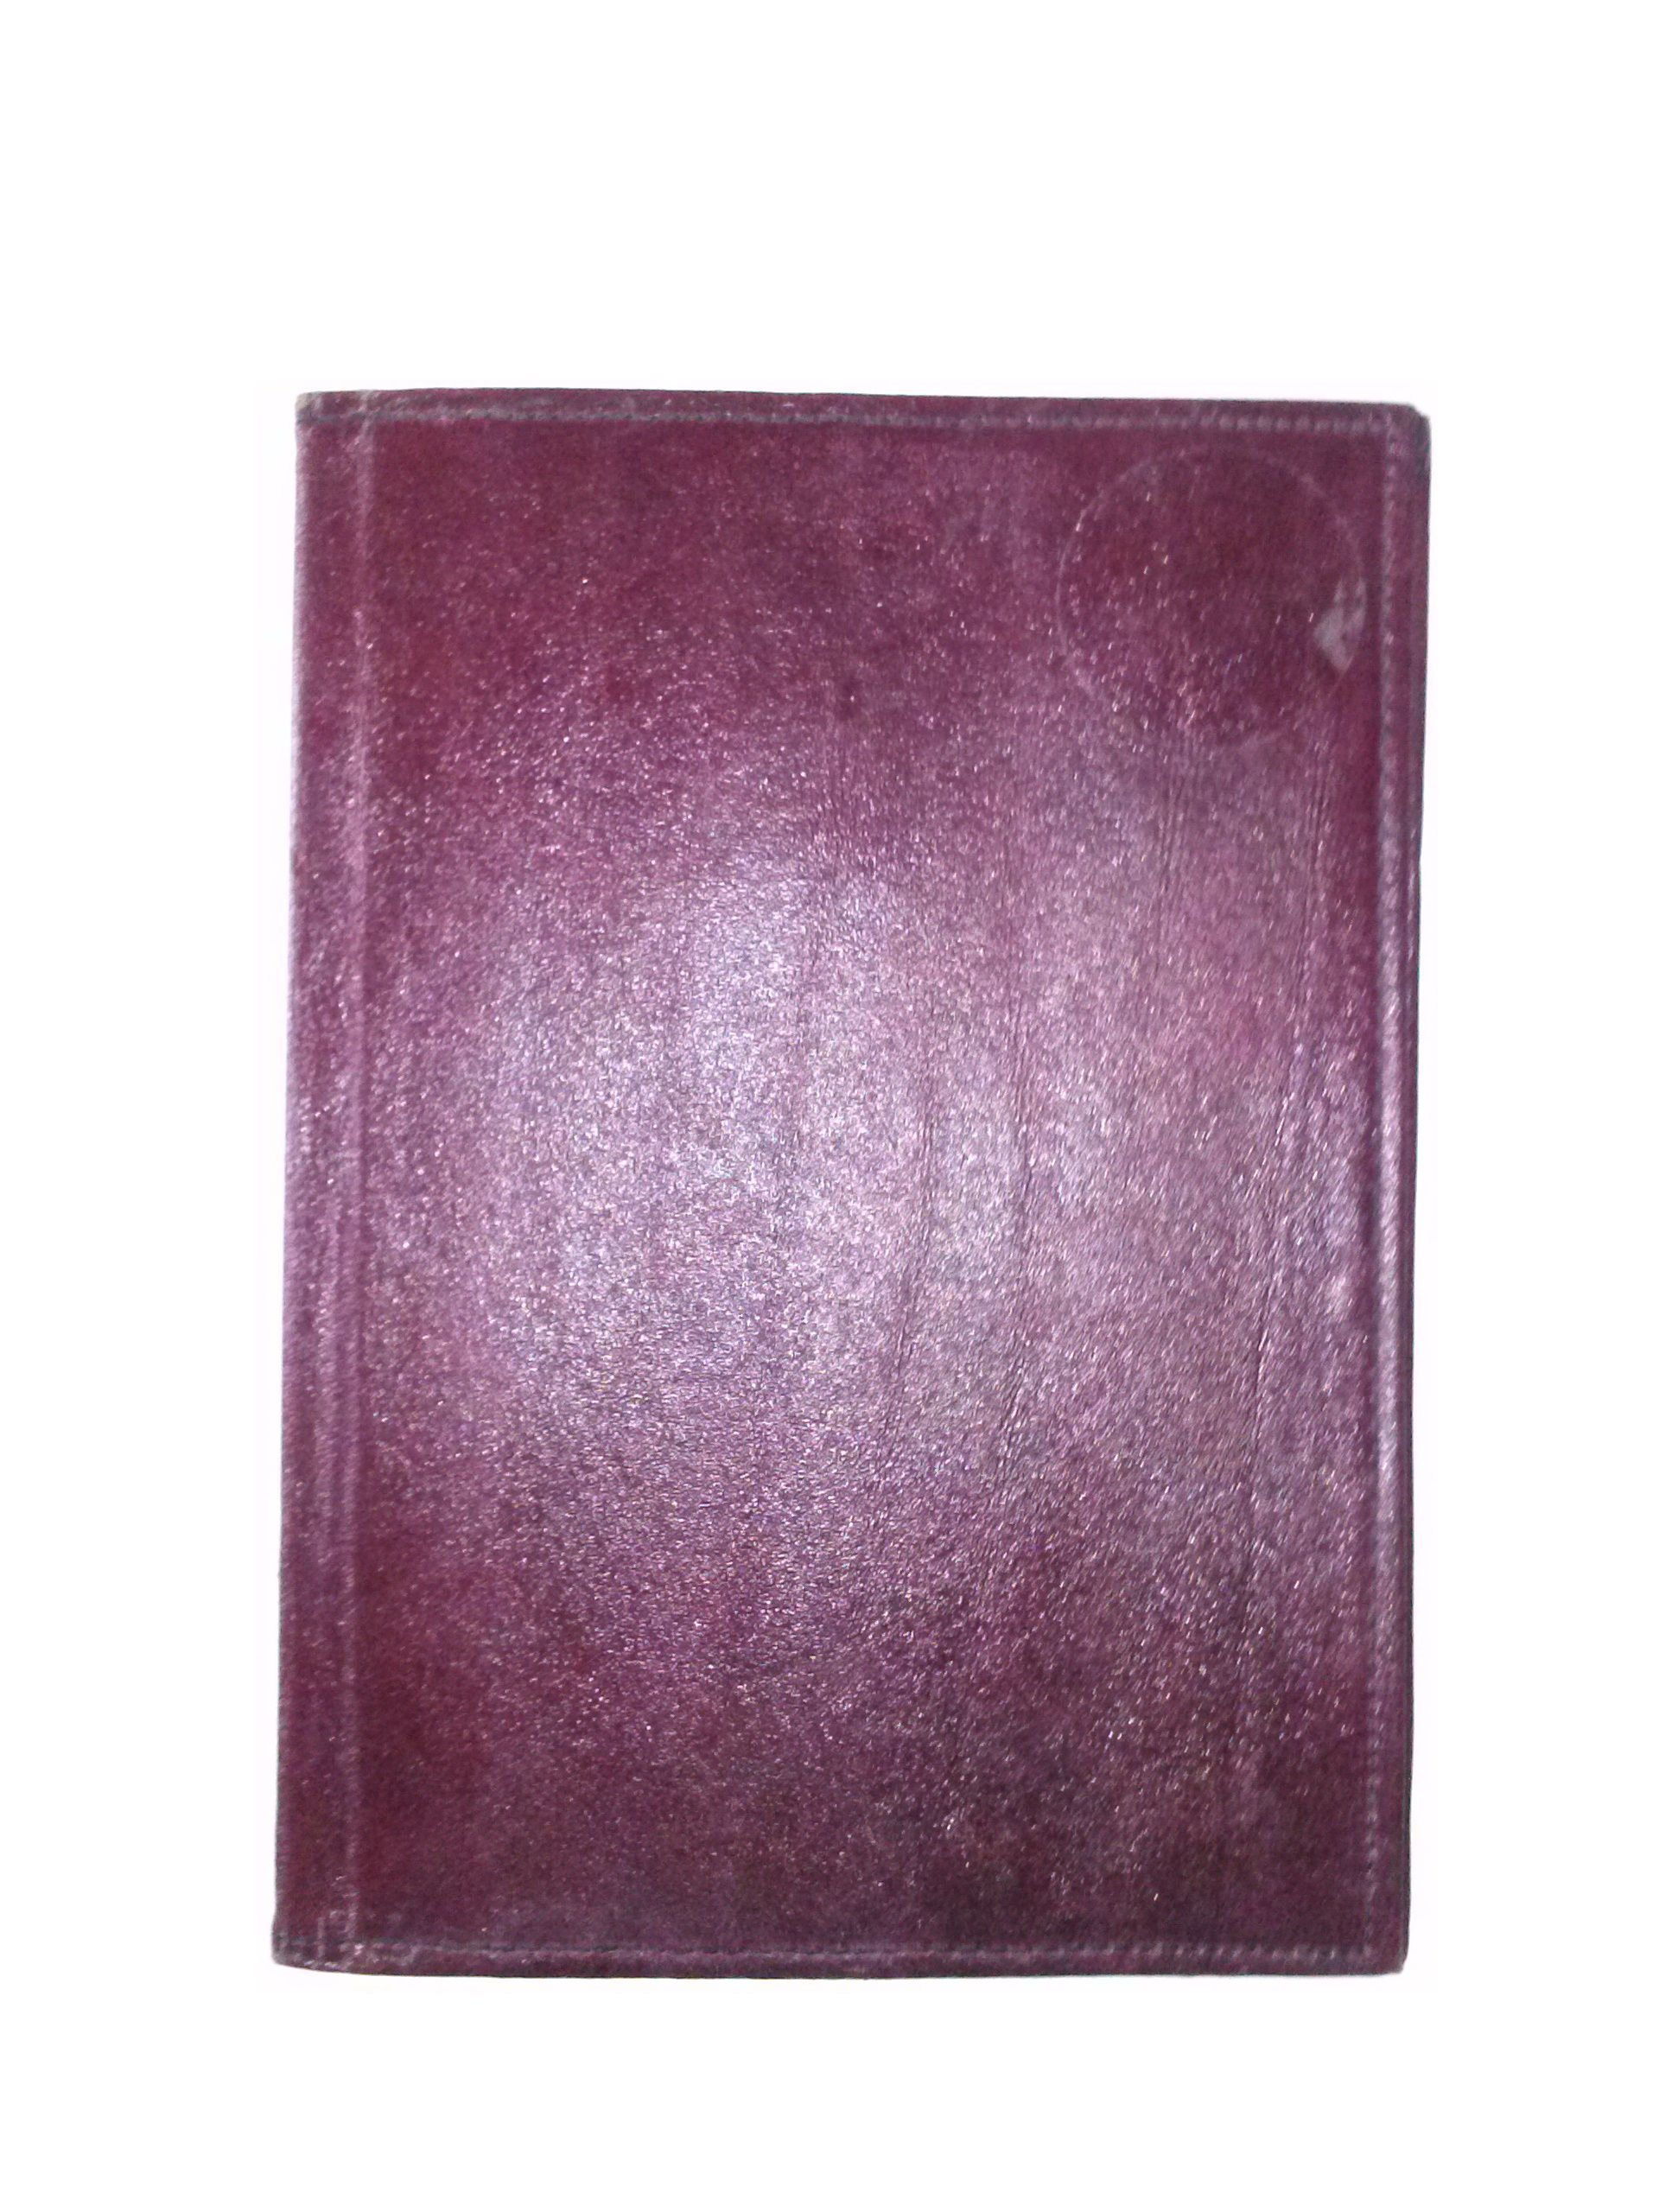 Preference Diary Cover Bonded Leather Burgundy 8 1/2'' x 6'' by Preference Diaries